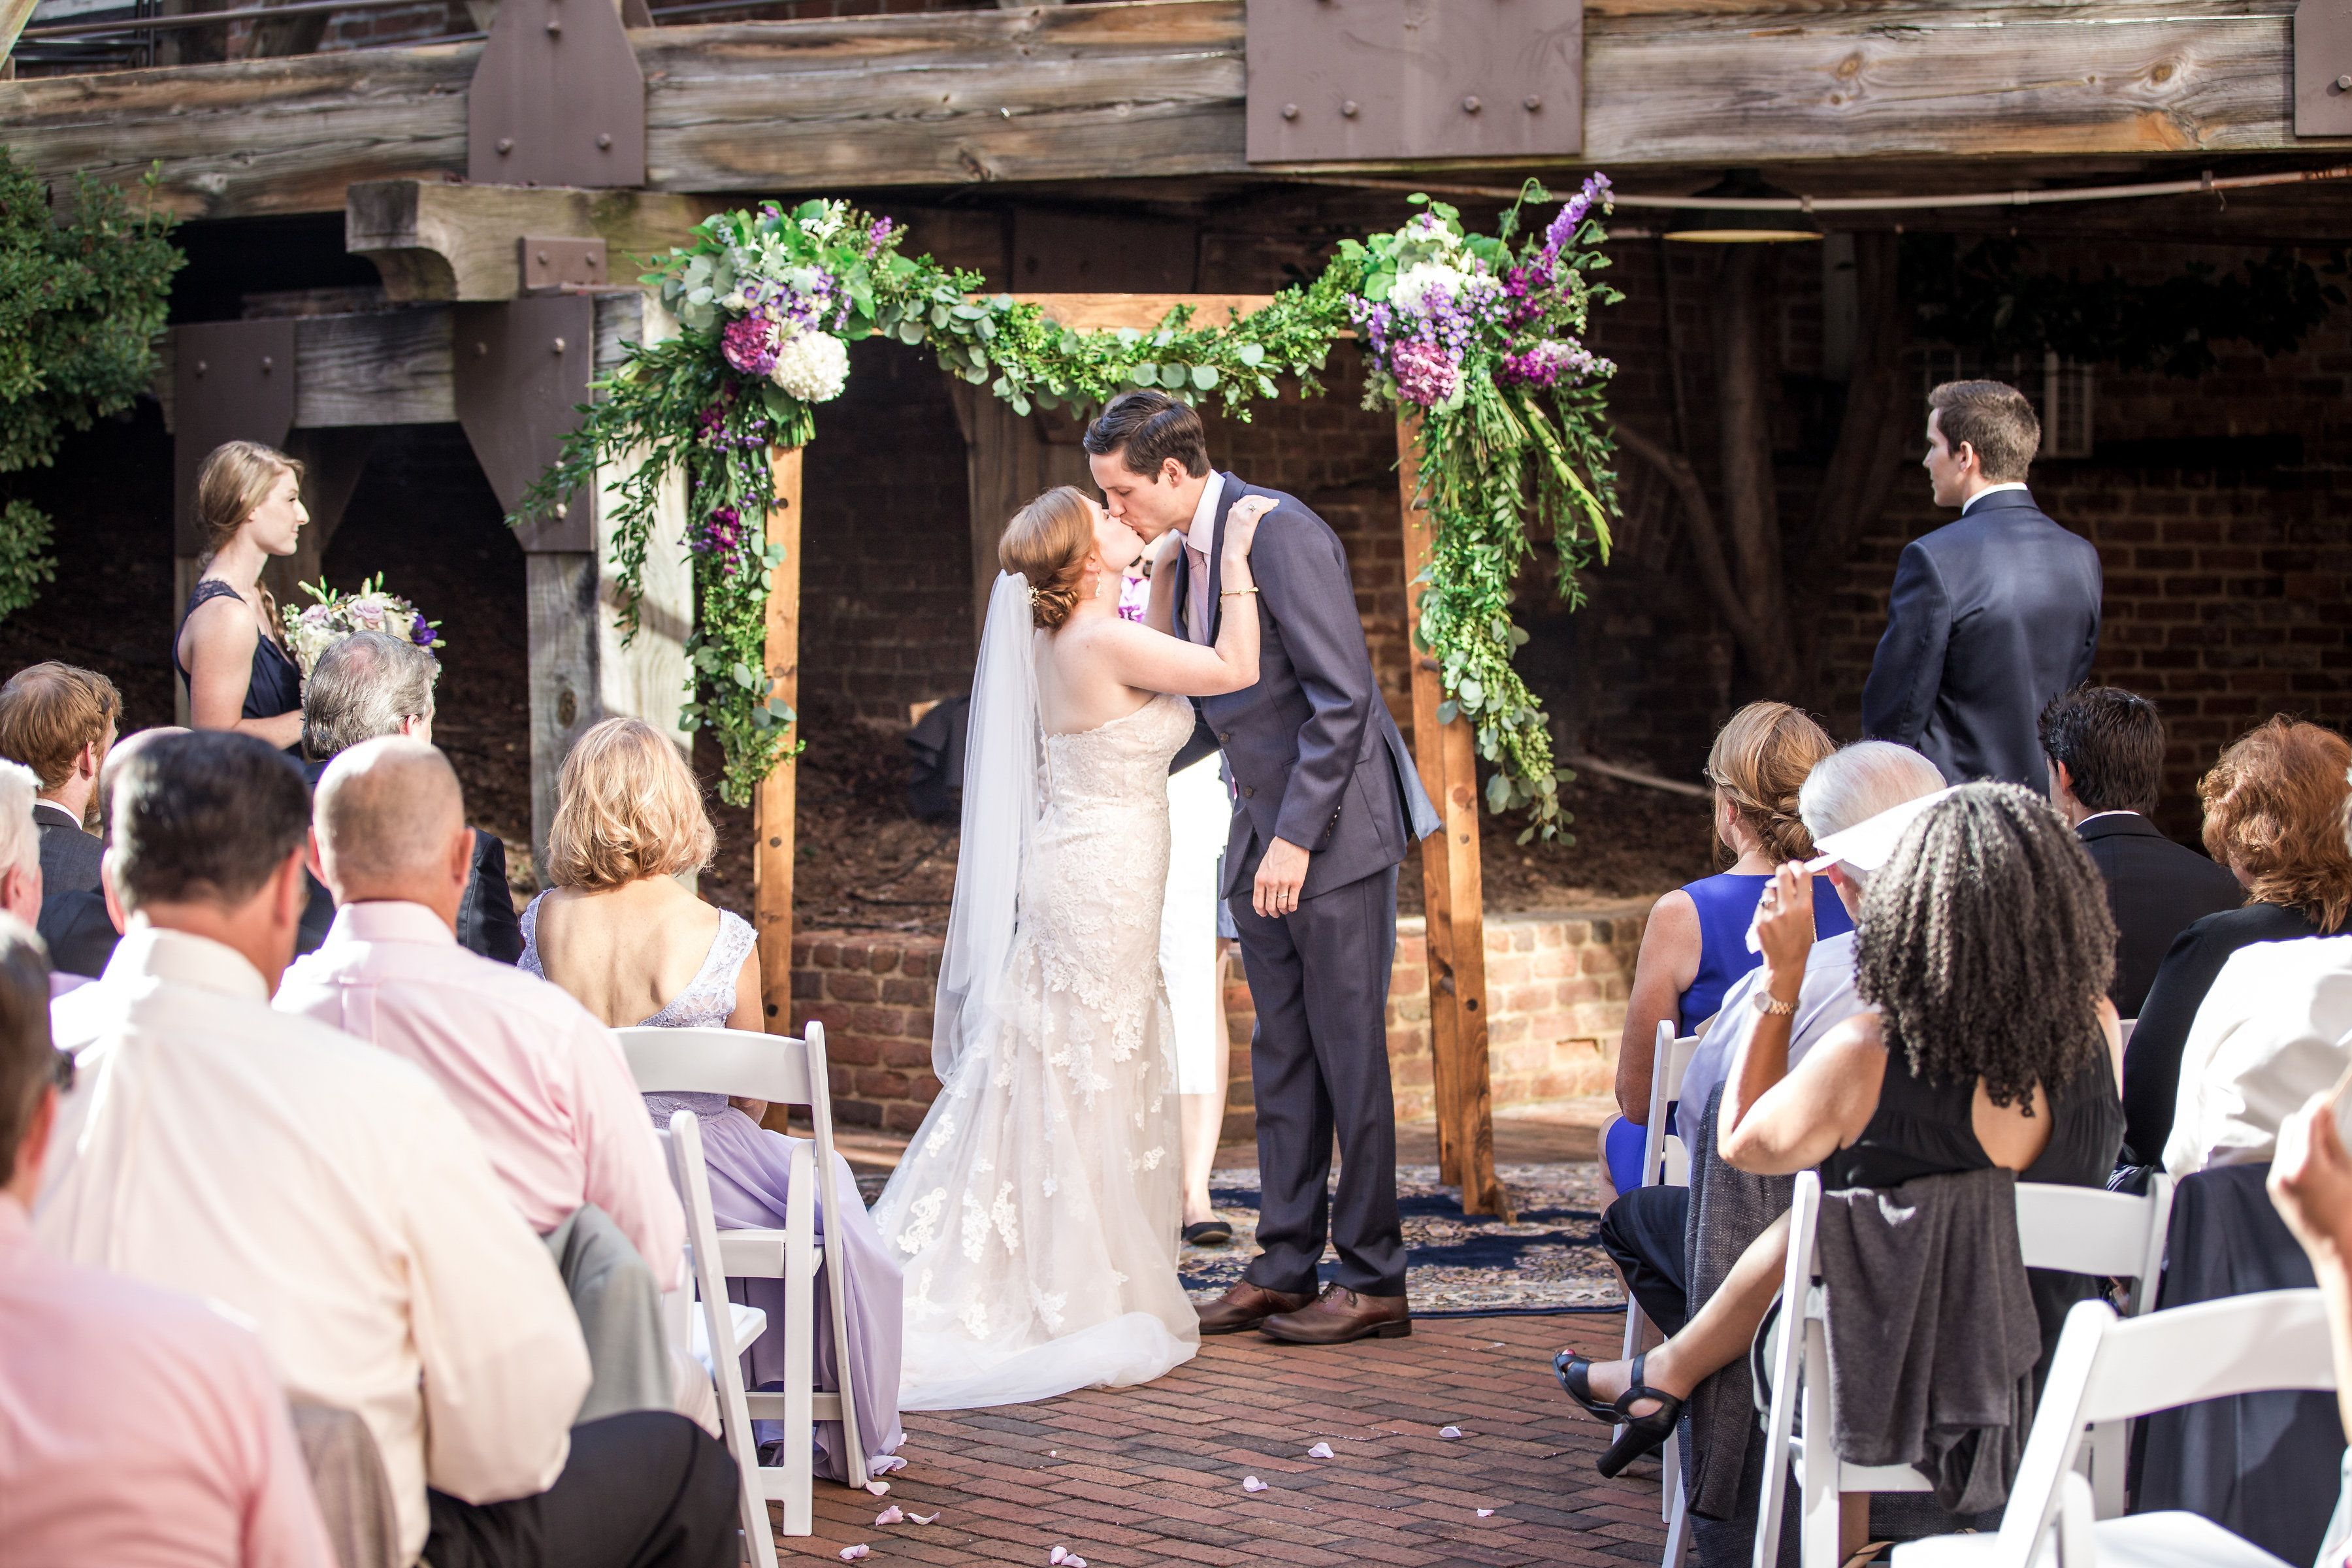 real weddings, wedding photography ideas, bride and groom, first kiss, just married, wedding ceremony, outdoor weddings, arbor, ceremony flowers, wedding flowers, The Historic Brookstown Inn, Winston Salem, purple and greenery